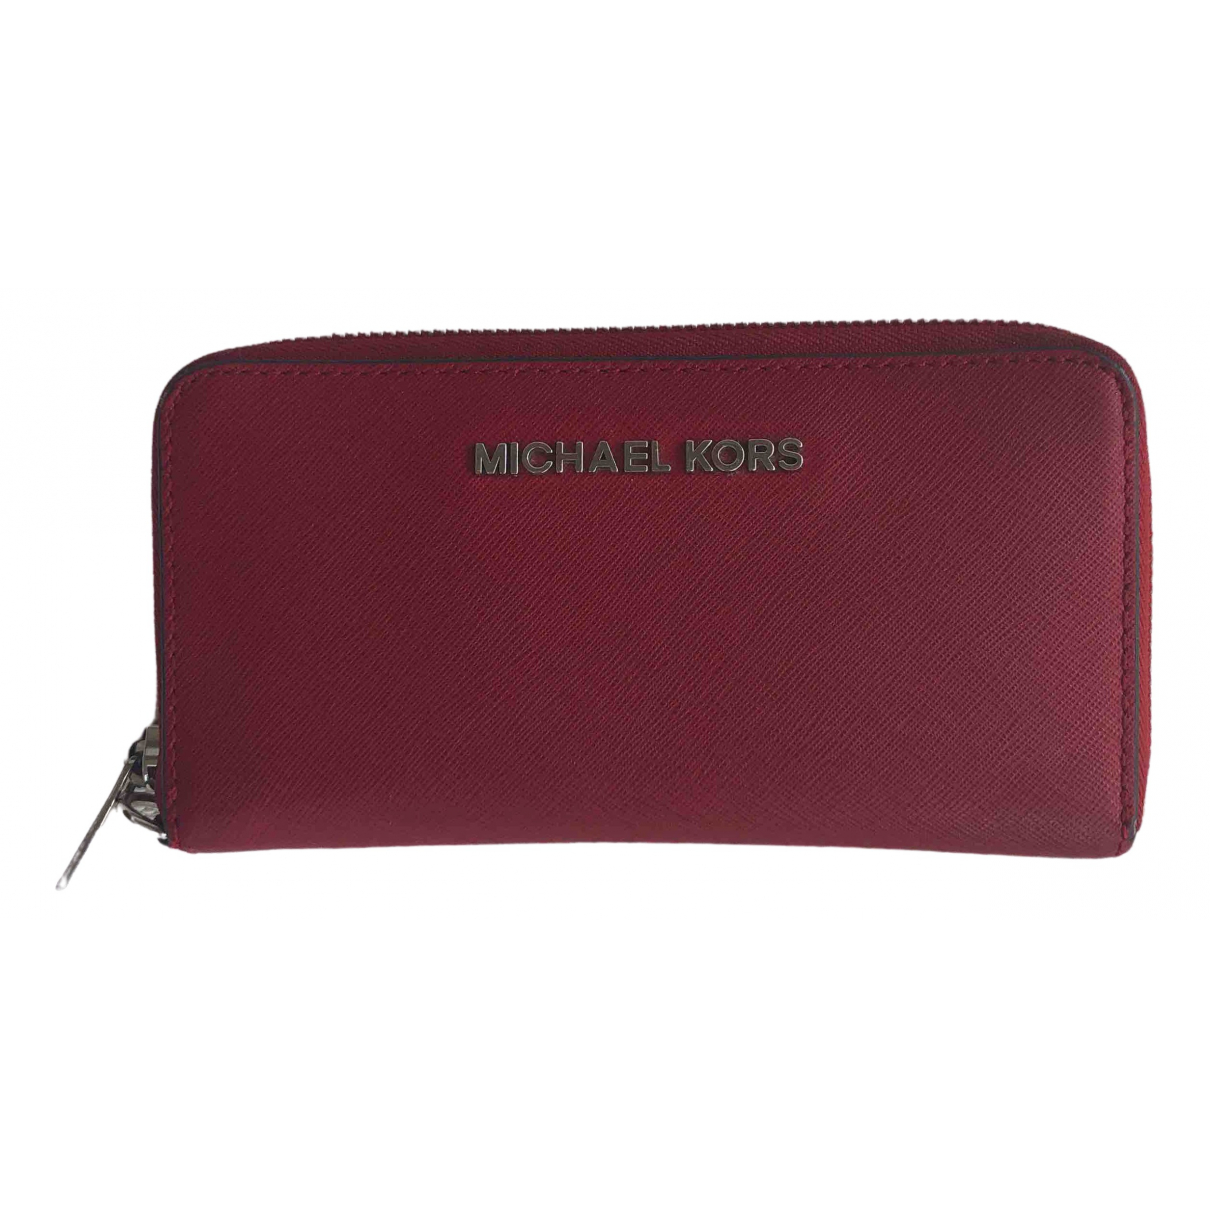 Michael Kors Jet Set Red Leather wallet for Women \N